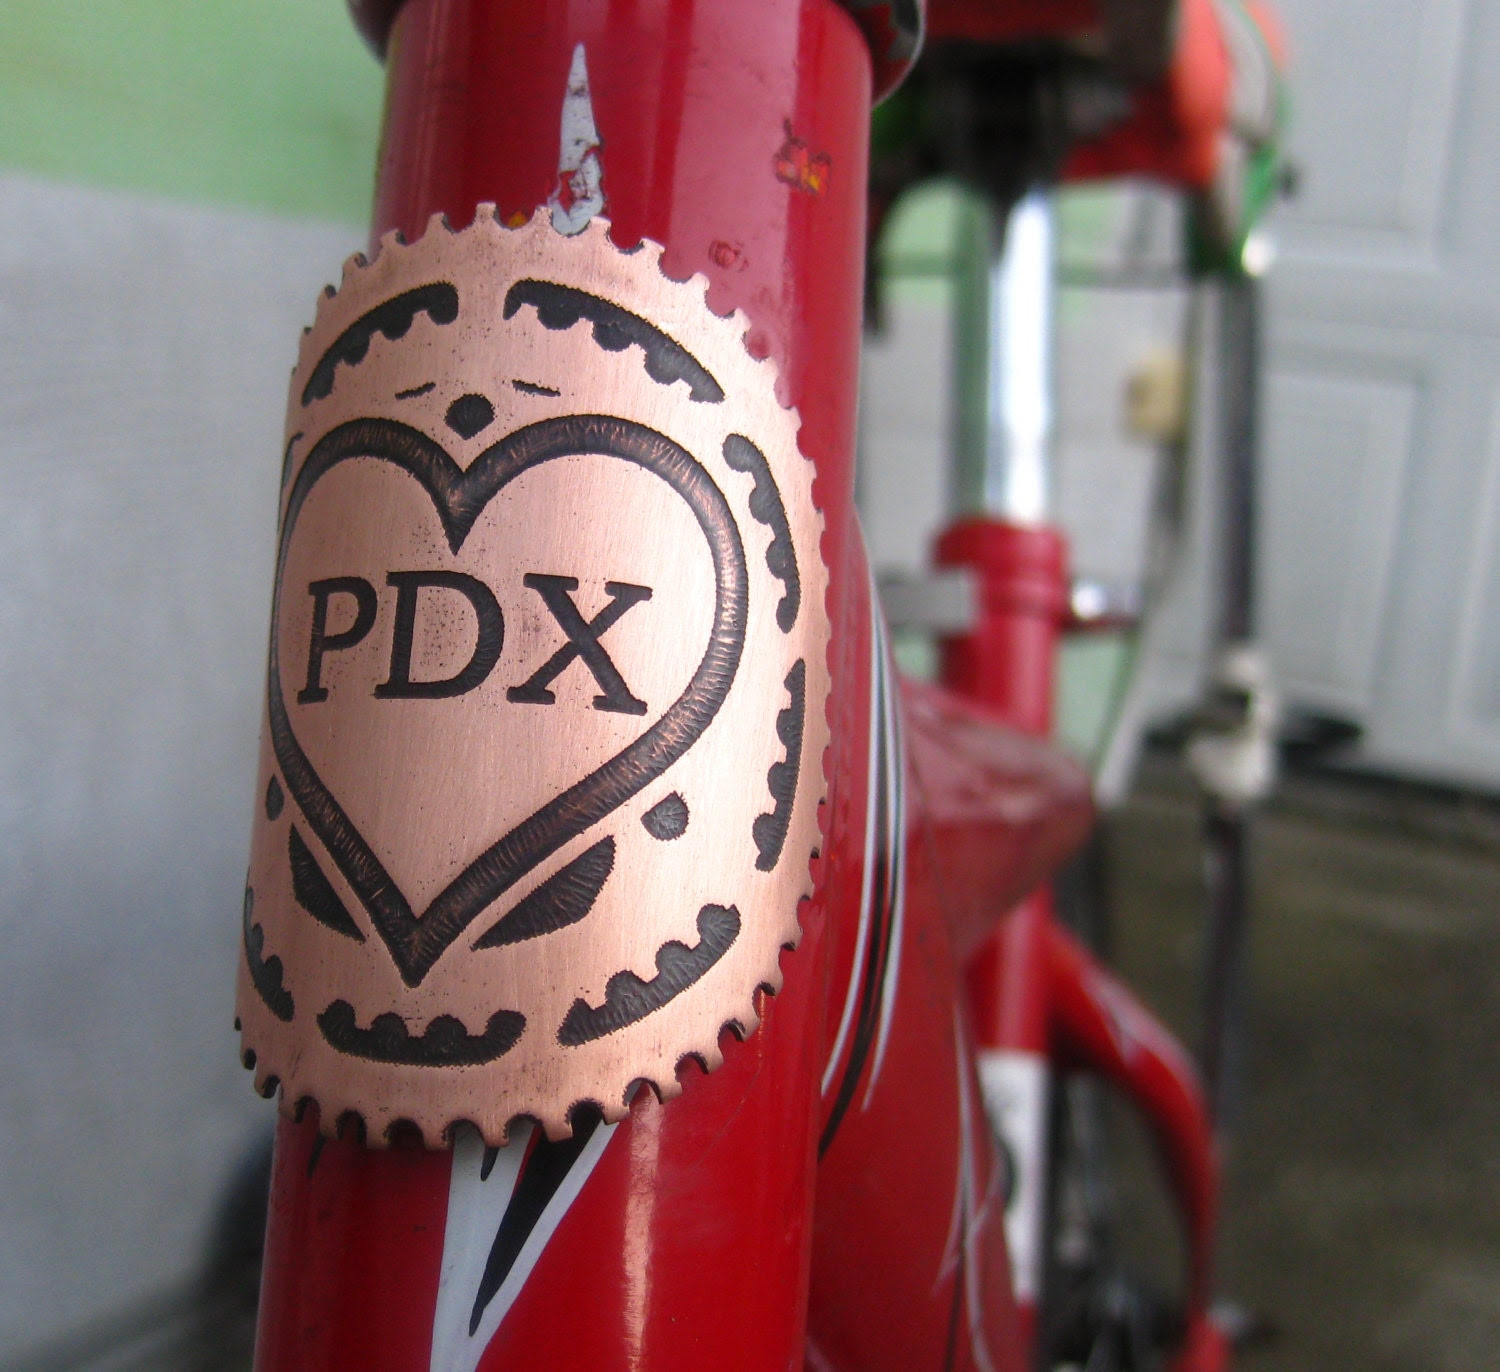 PDX Love - bicycle head badge, Portlandia, Portland, Oregon, Heart, bicycle gear, Etched copper, bicycle accessories